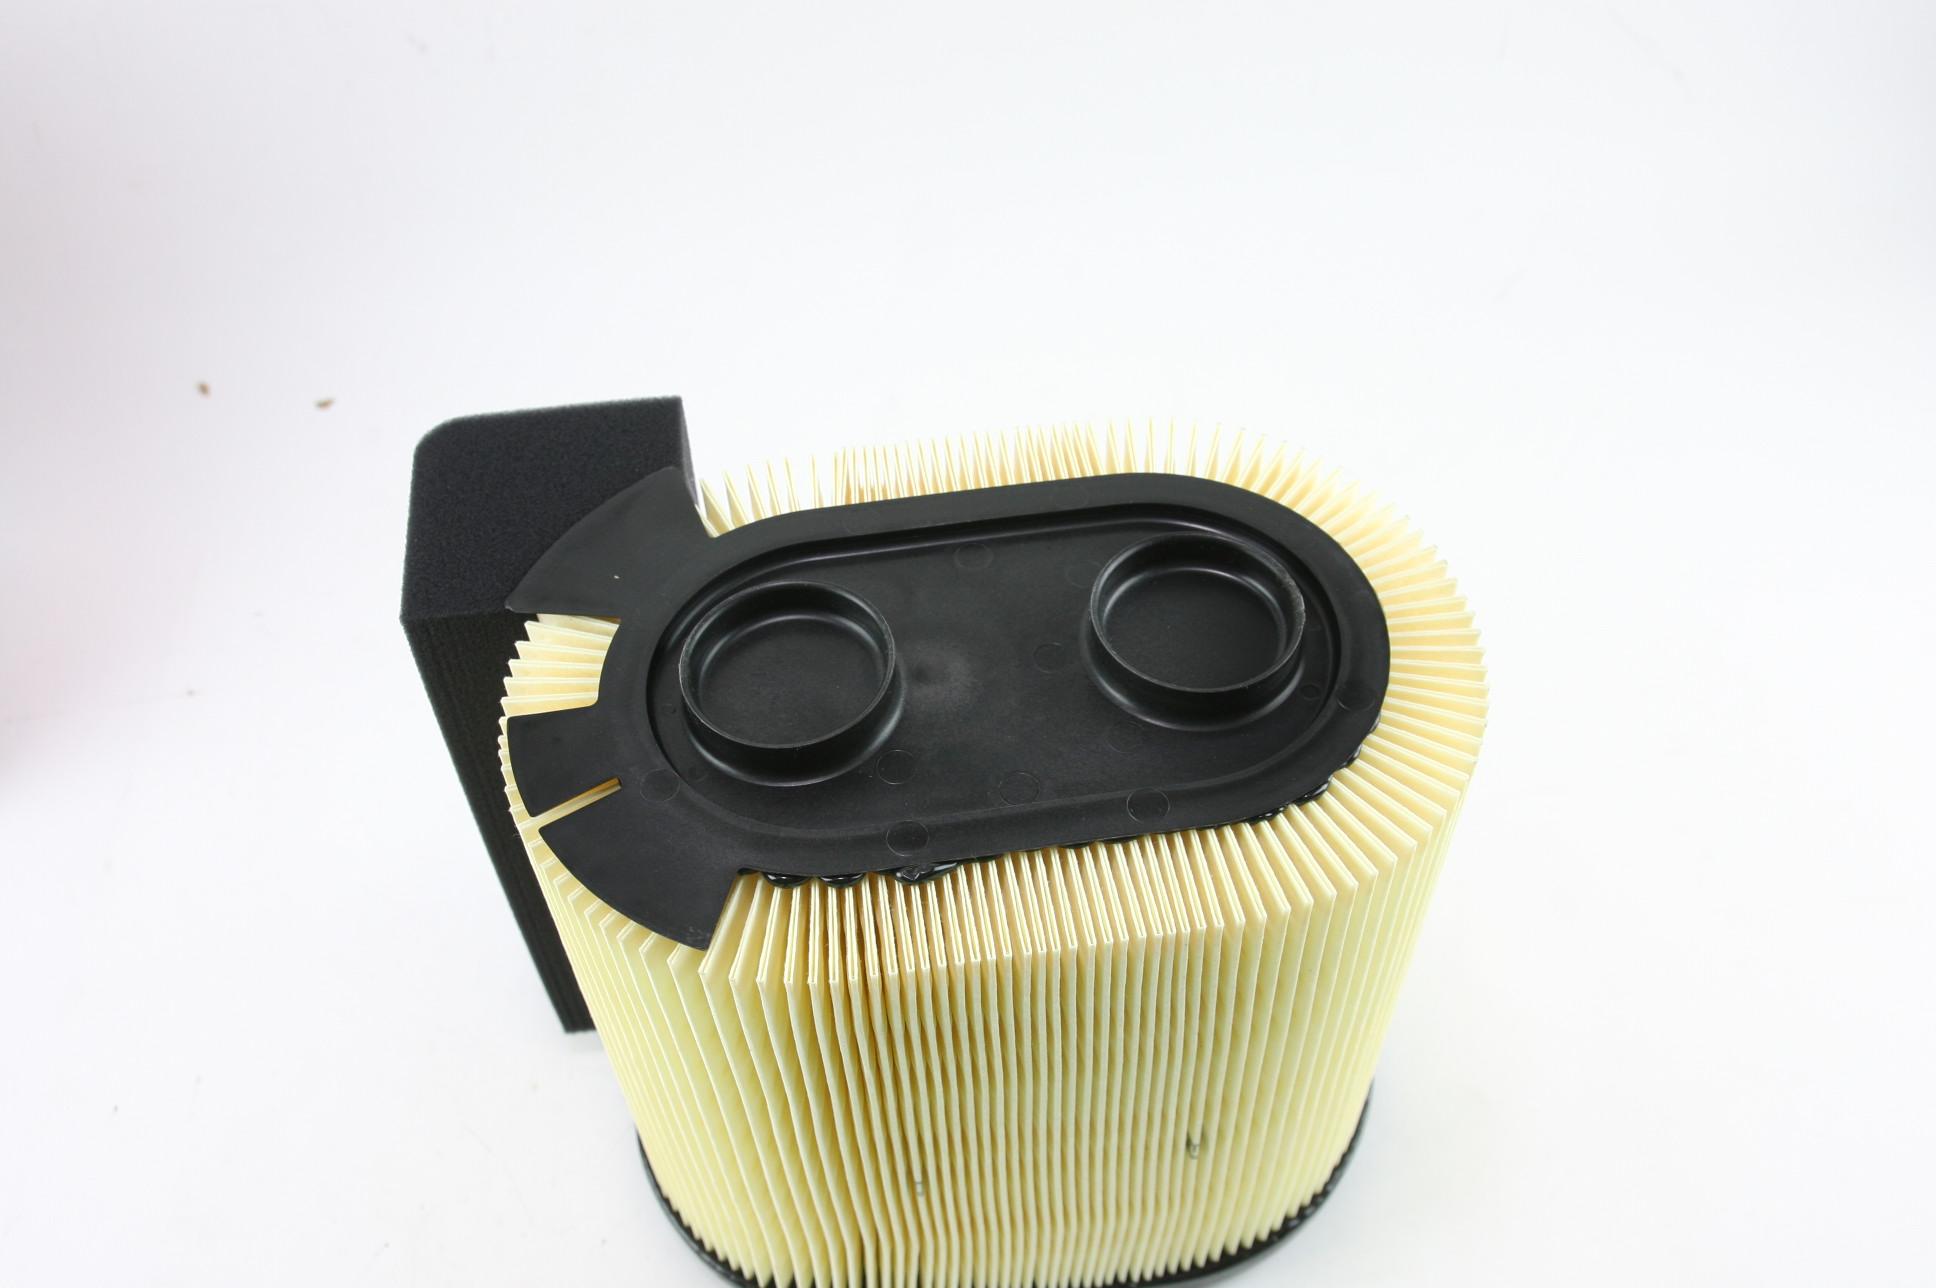 New OEM 6 Pack Motorcraft FA1927 Ford HC3Z9601A Powerstroke Diesel Air Filter - image 5